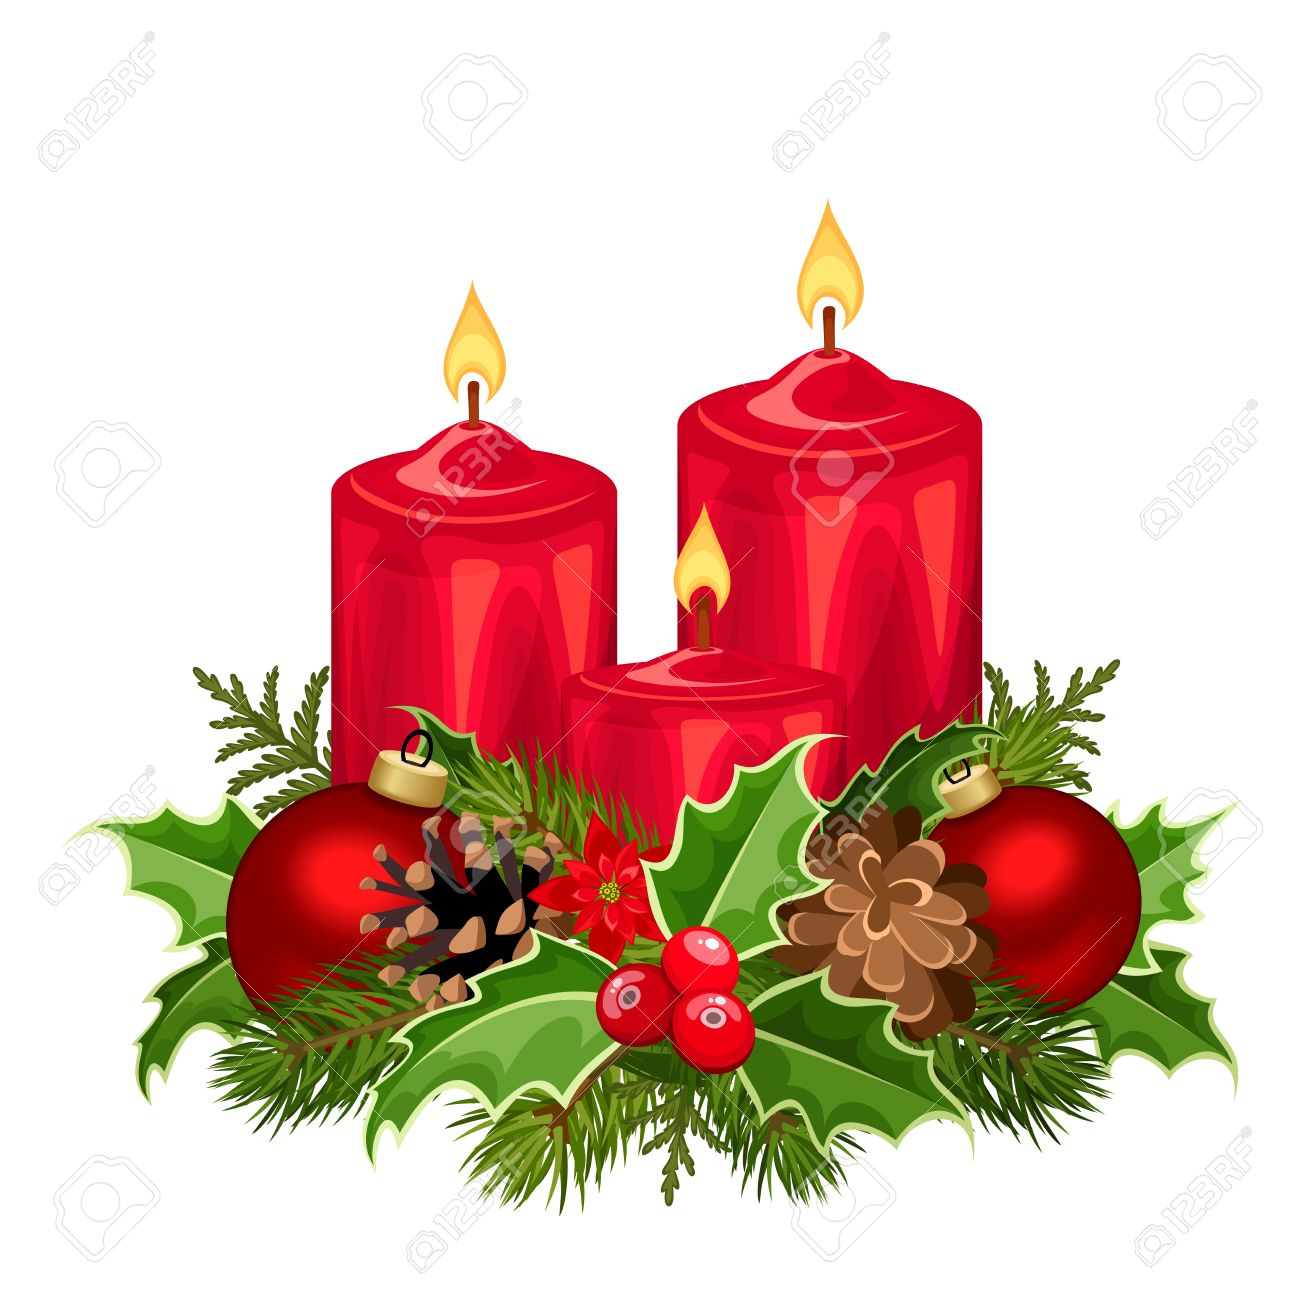 Christmas Candles.Vector Illustration Of Three Red Christmas Candles With Fir Branches